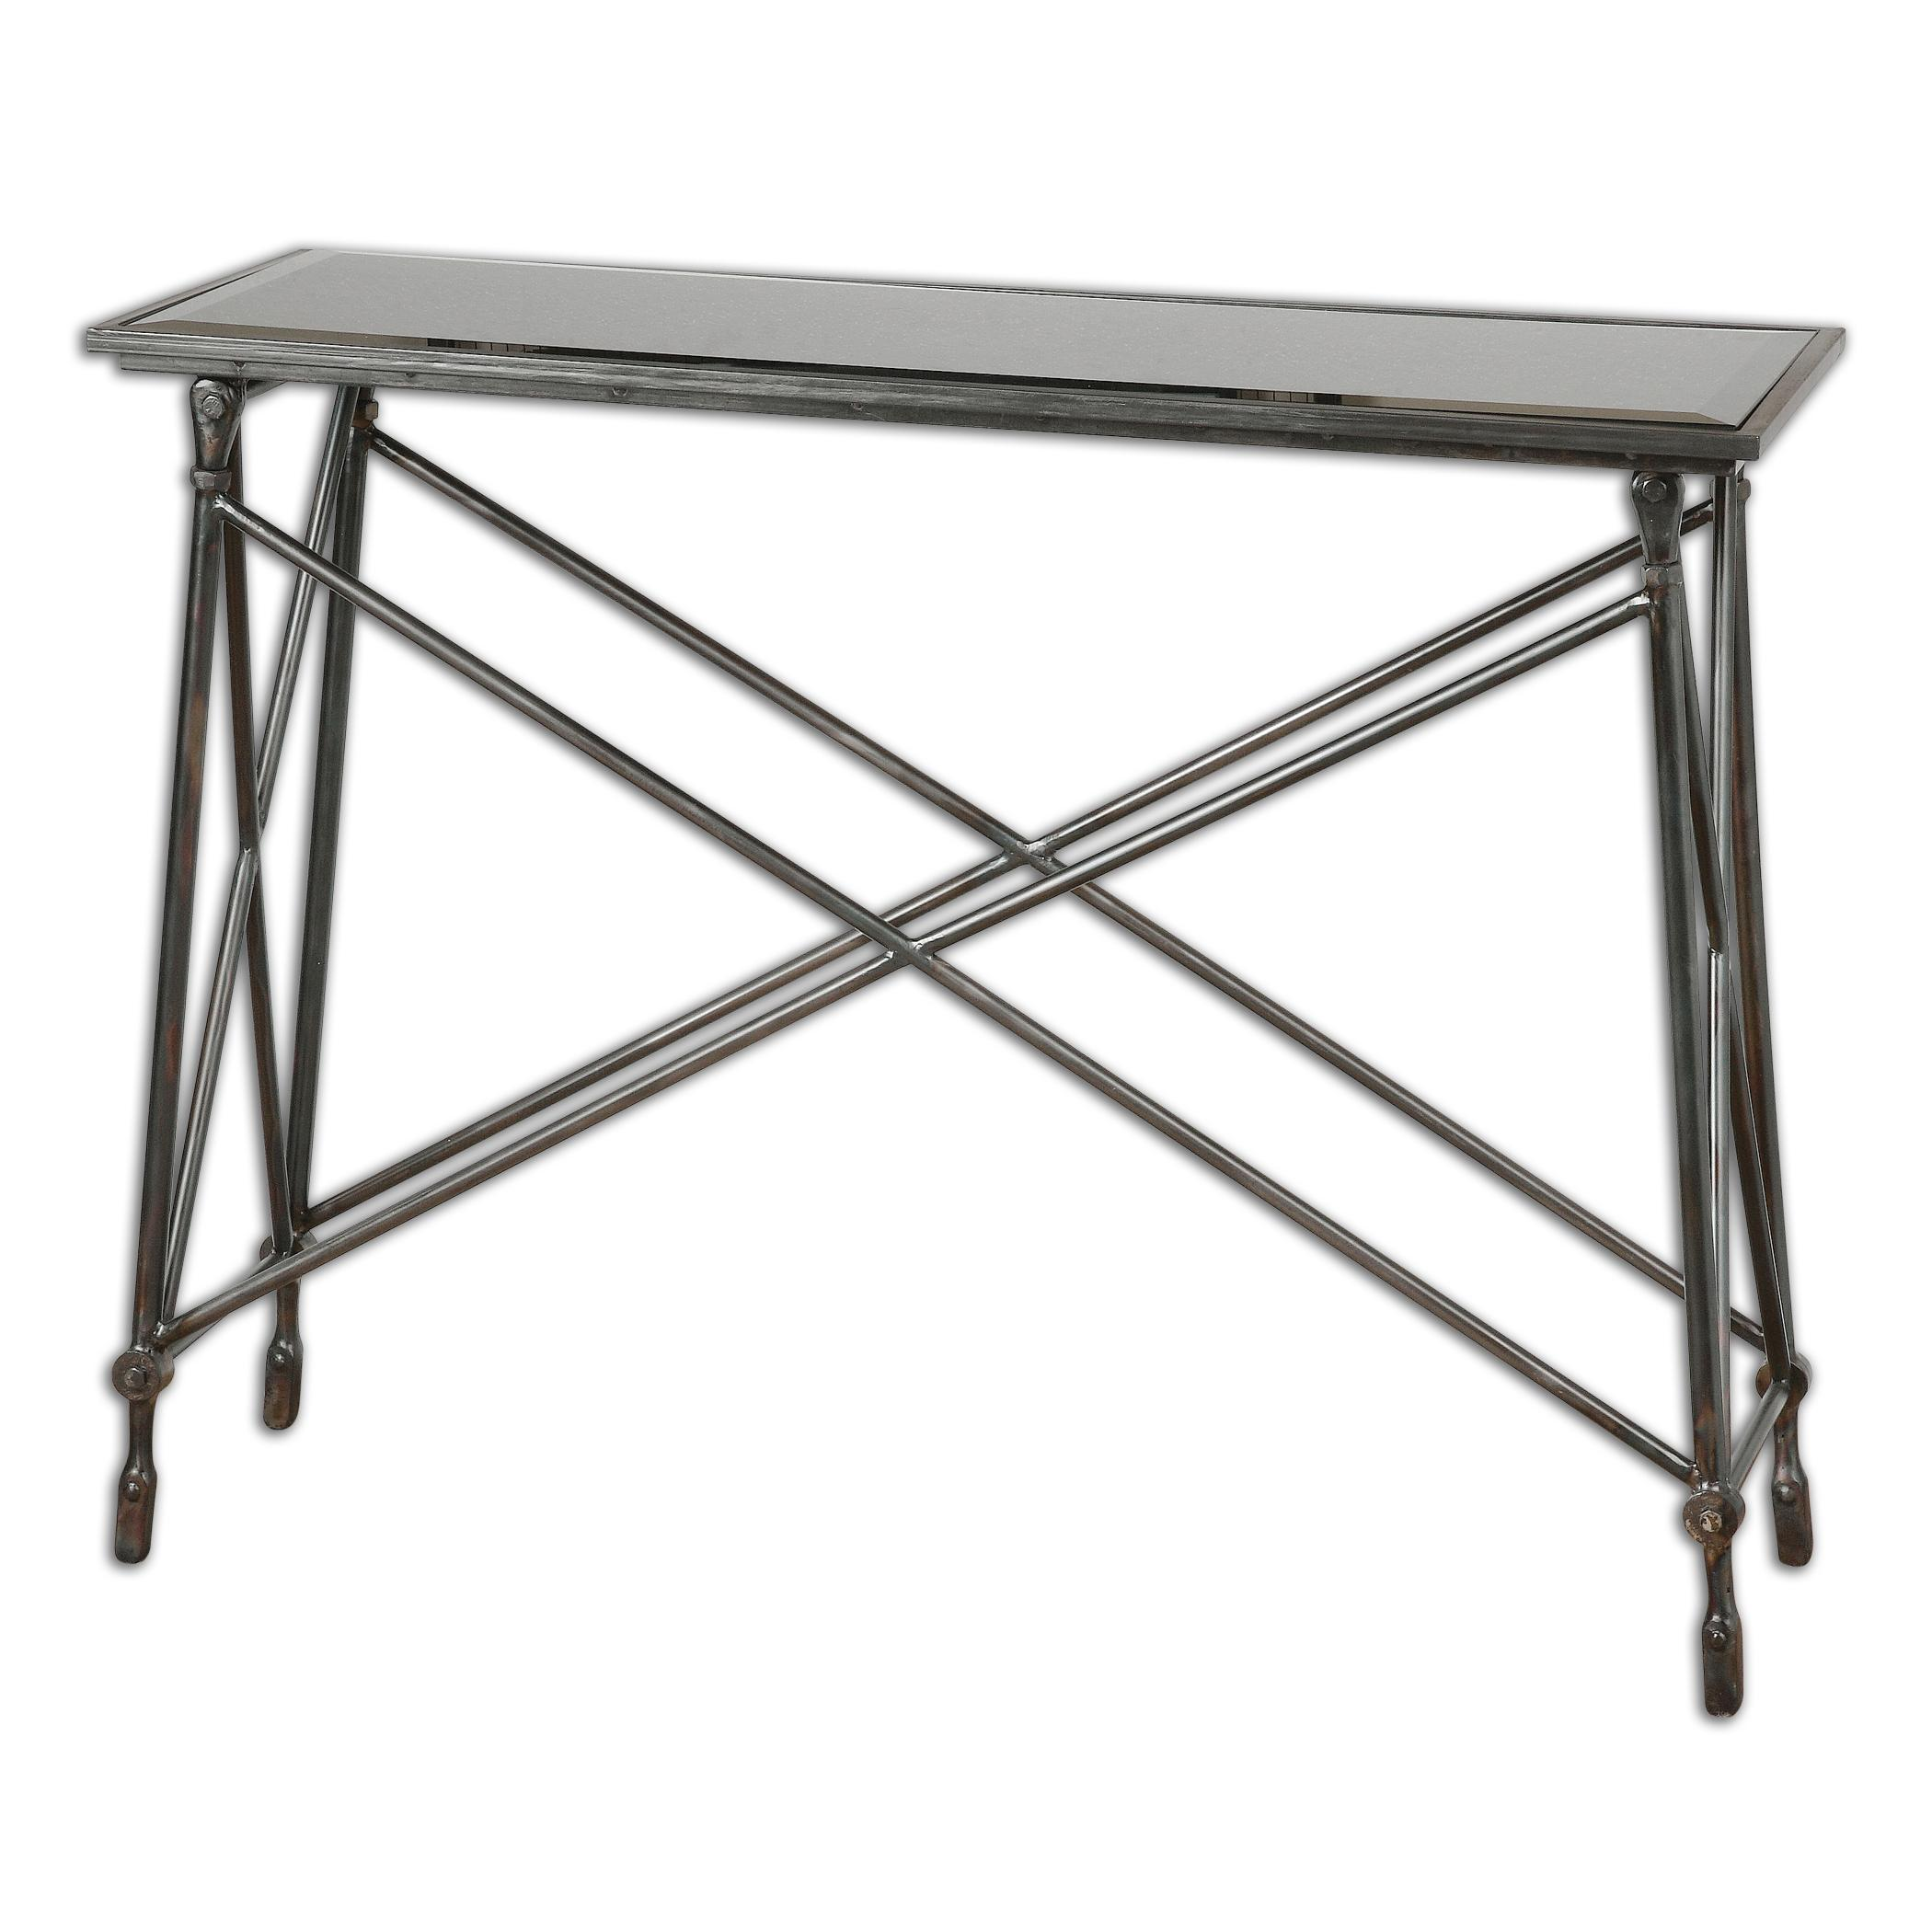 Uttermost Accent Furniture  Collier Black Glass Console Table - Item Number: 24420